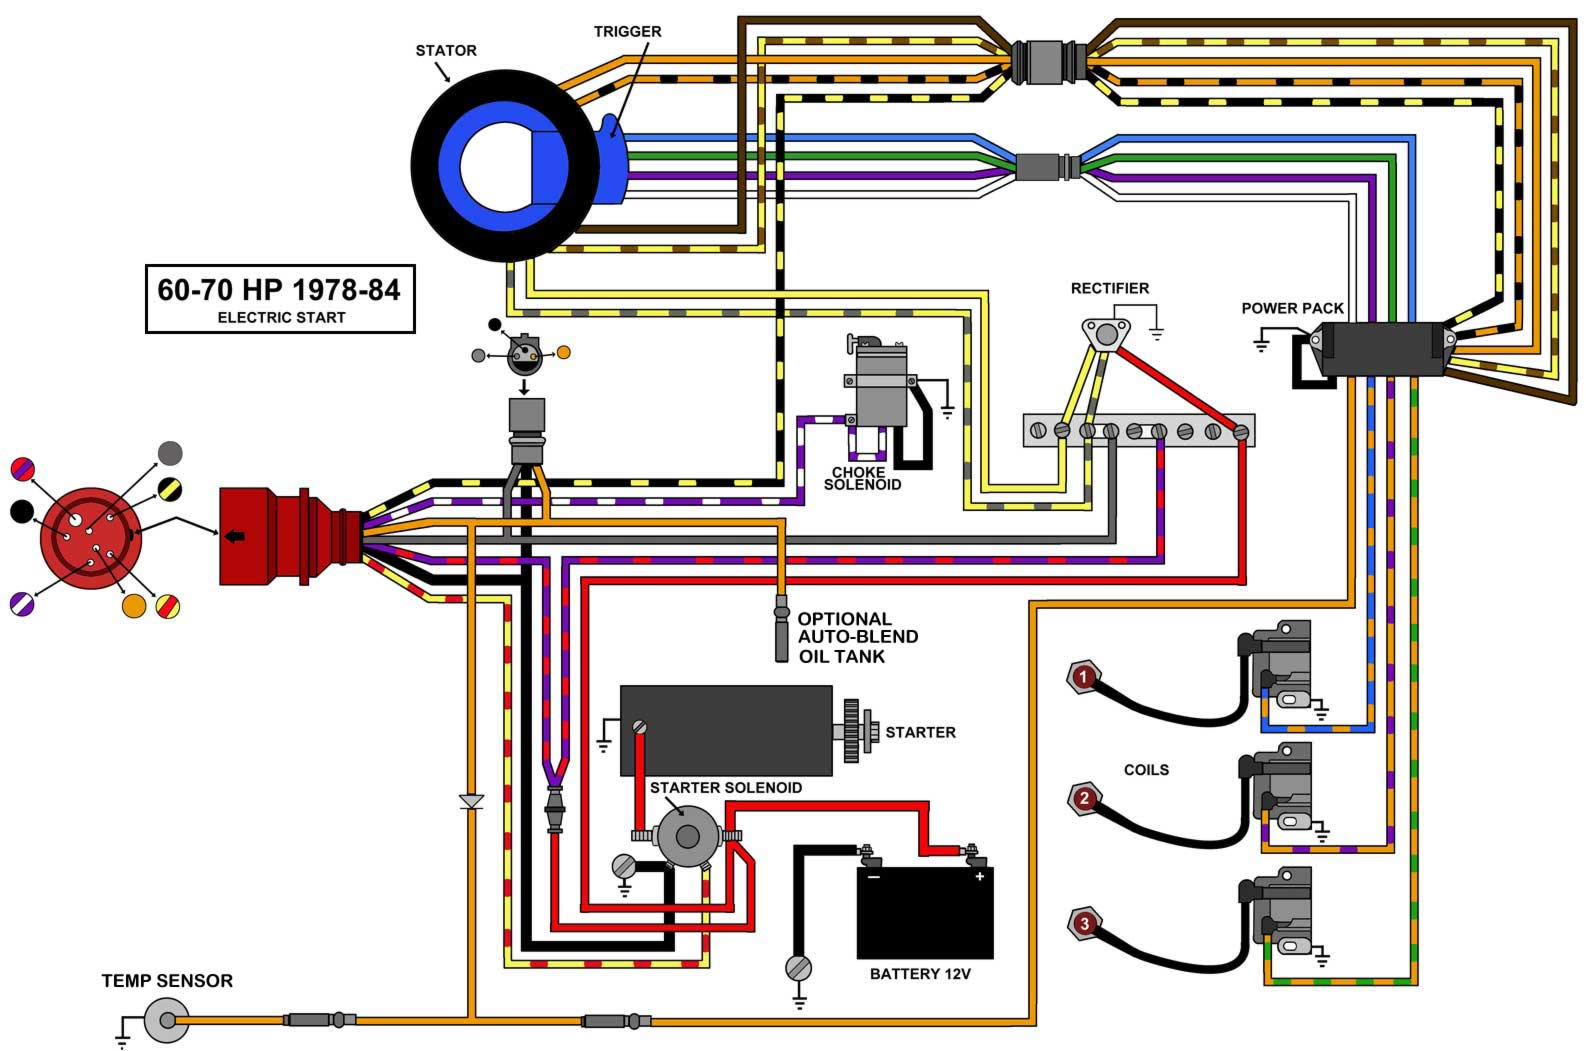 wiring tach from johnson controls page 1 iboats boating forums here s a diagram that shows a typical tilt trim system